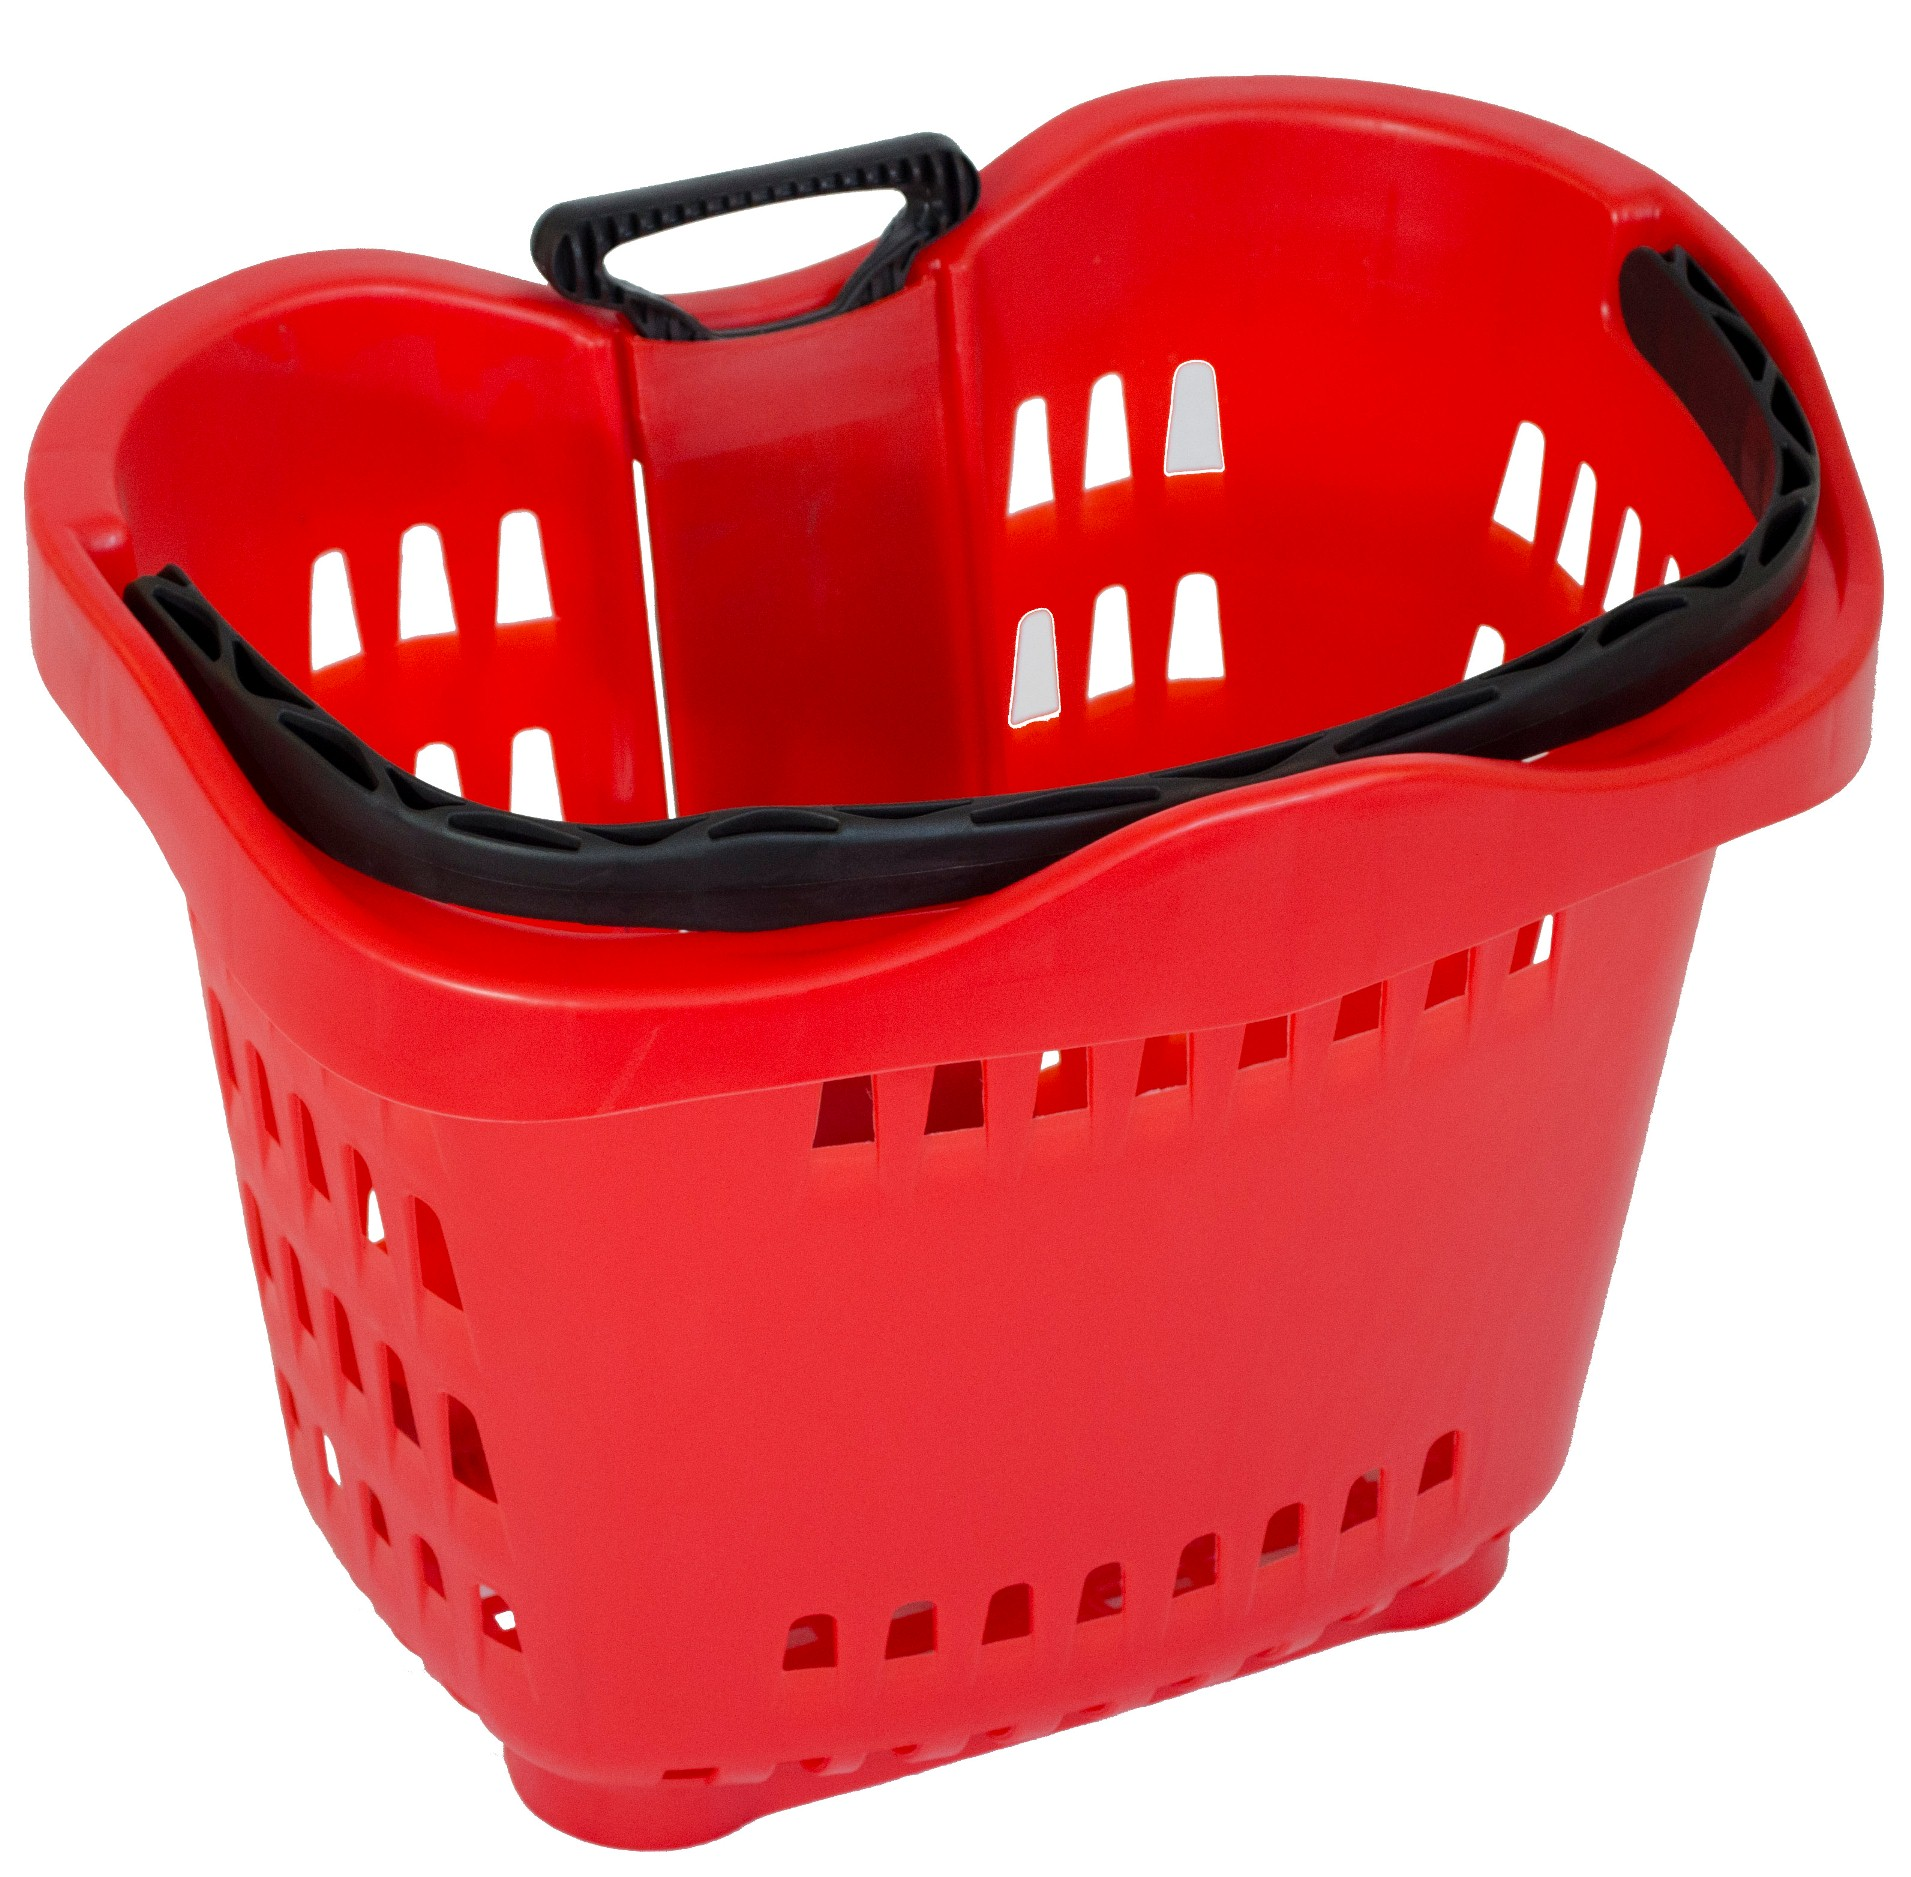 Our red plastic shopping baskets with wheels is the perfect shopping basket to suit any retail store. This rolling shopping baskets comes in a variety of colours & is fully customizable with your company logo. Ideal for supermarkets & fruit shops.